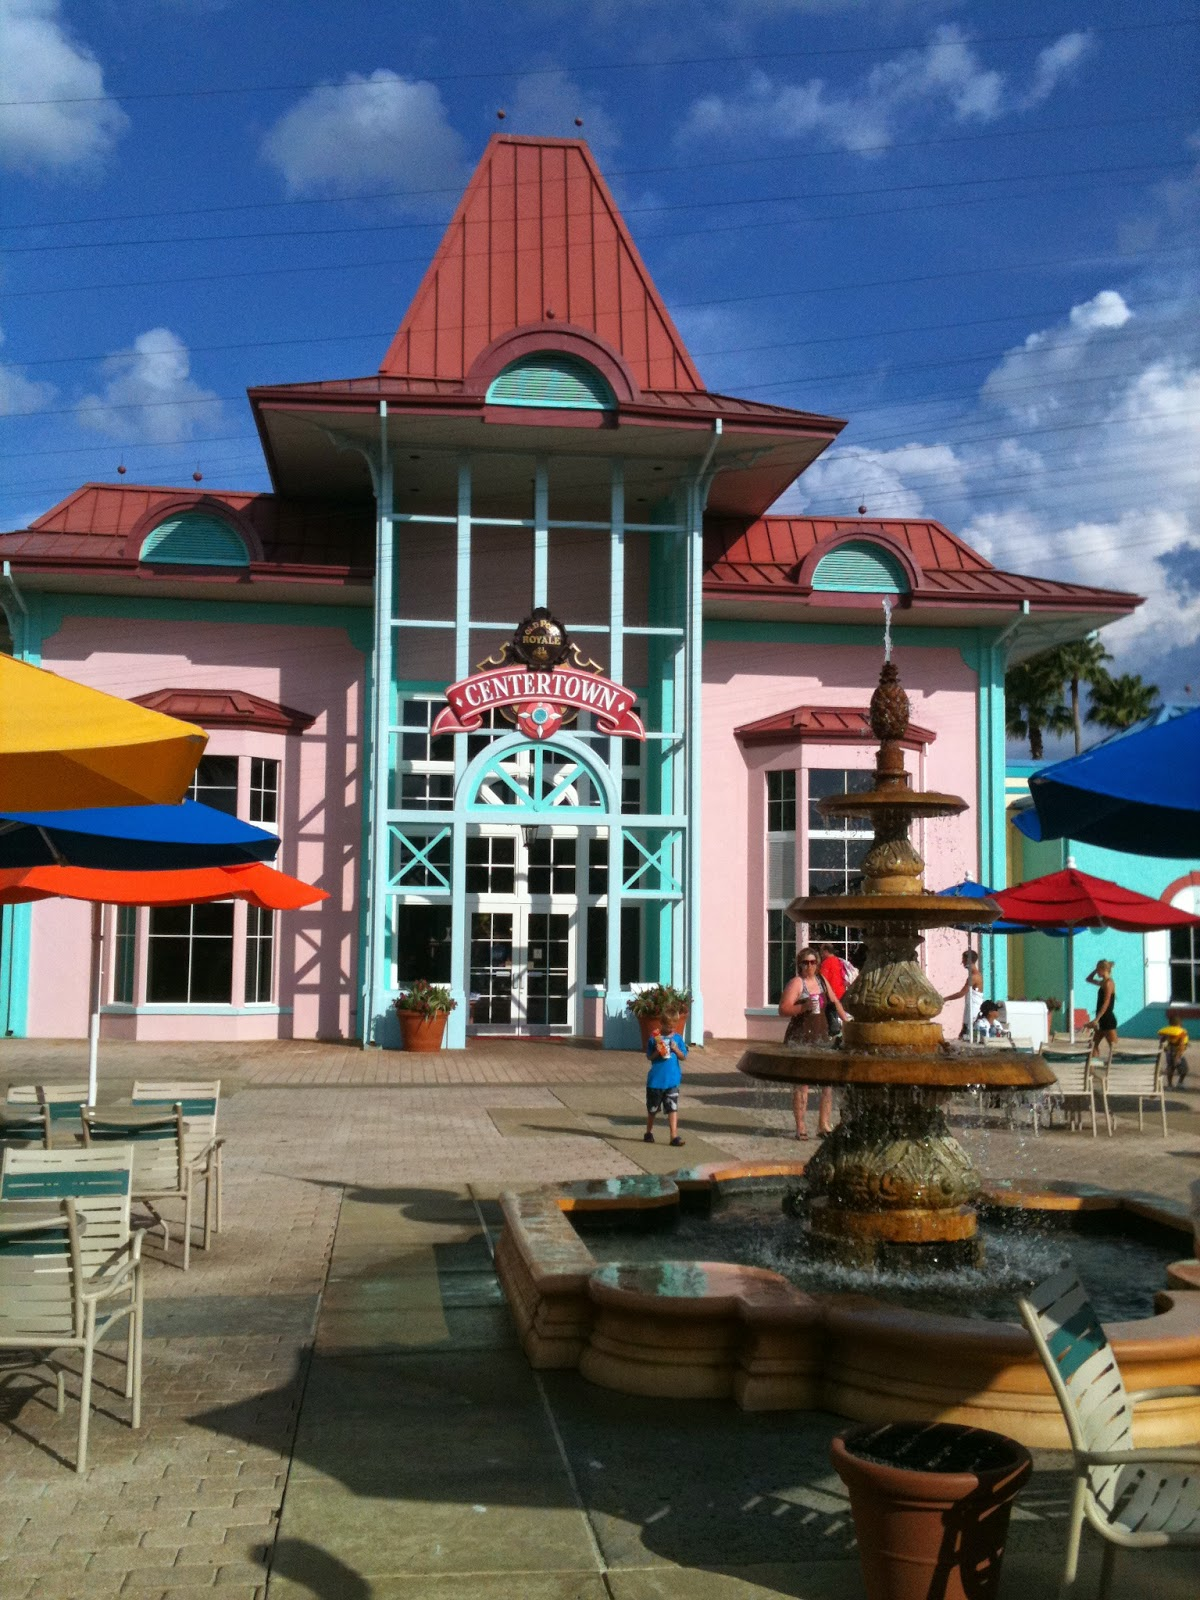 You Will Find Pastel Colonial Architecture Lush Palm Trees White Sand Hammocks To Relax In At The Caribbean Beach Resort